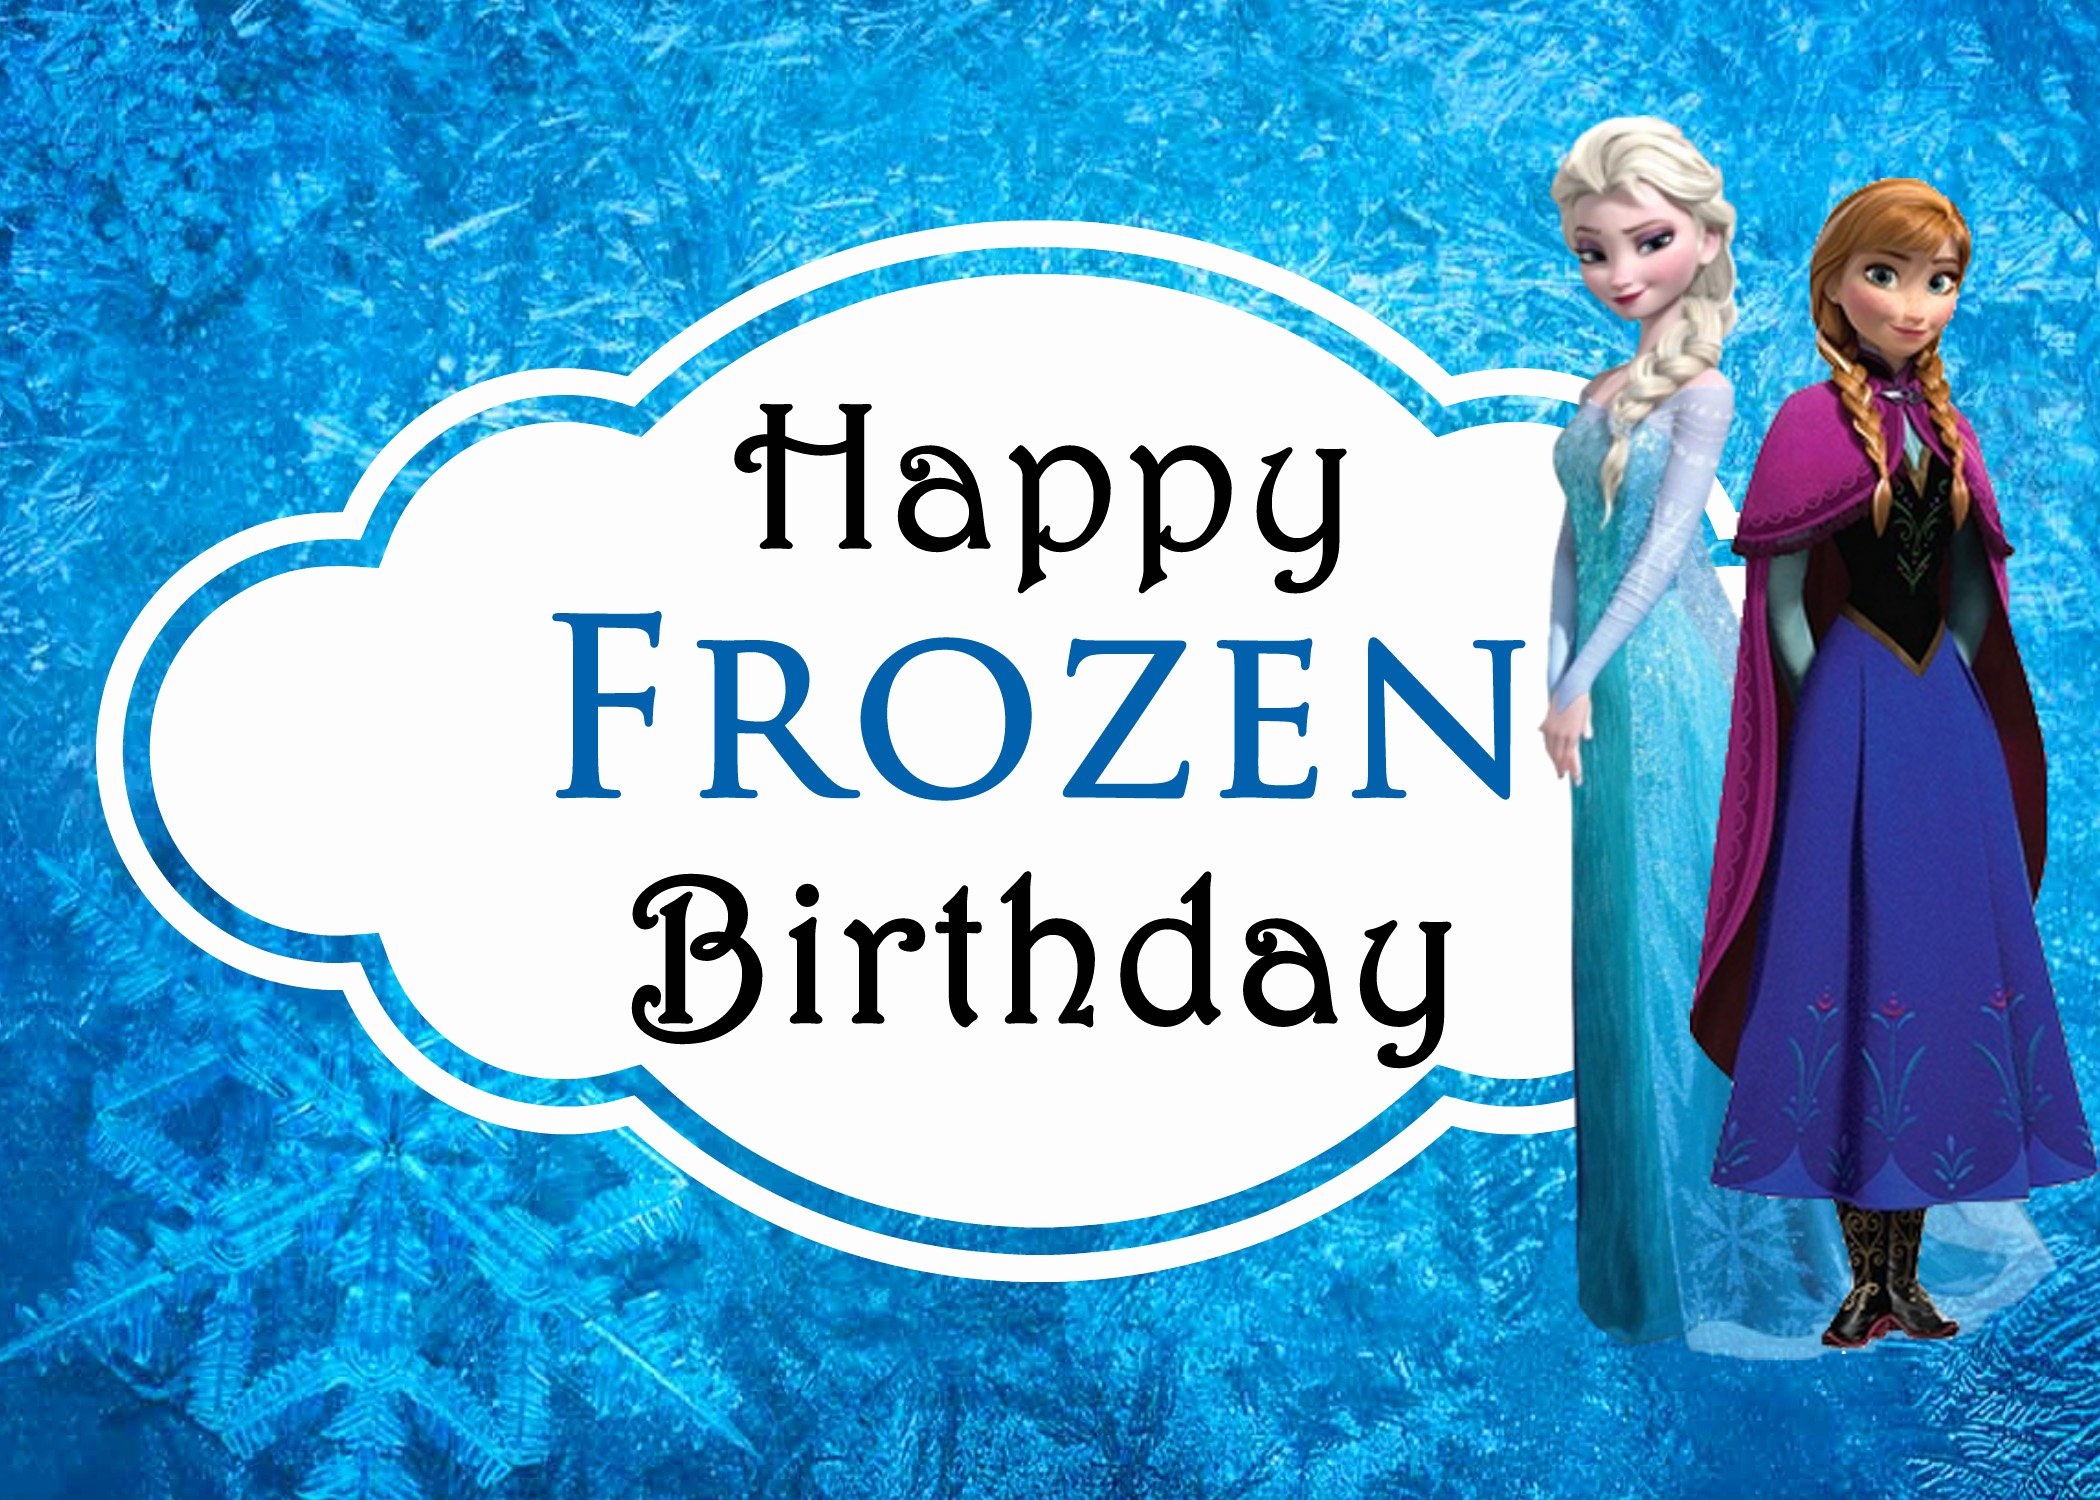 Frozen Birthday Cards Printable Best Of Celebrating Sisters with Disney S Frozen Free Printable